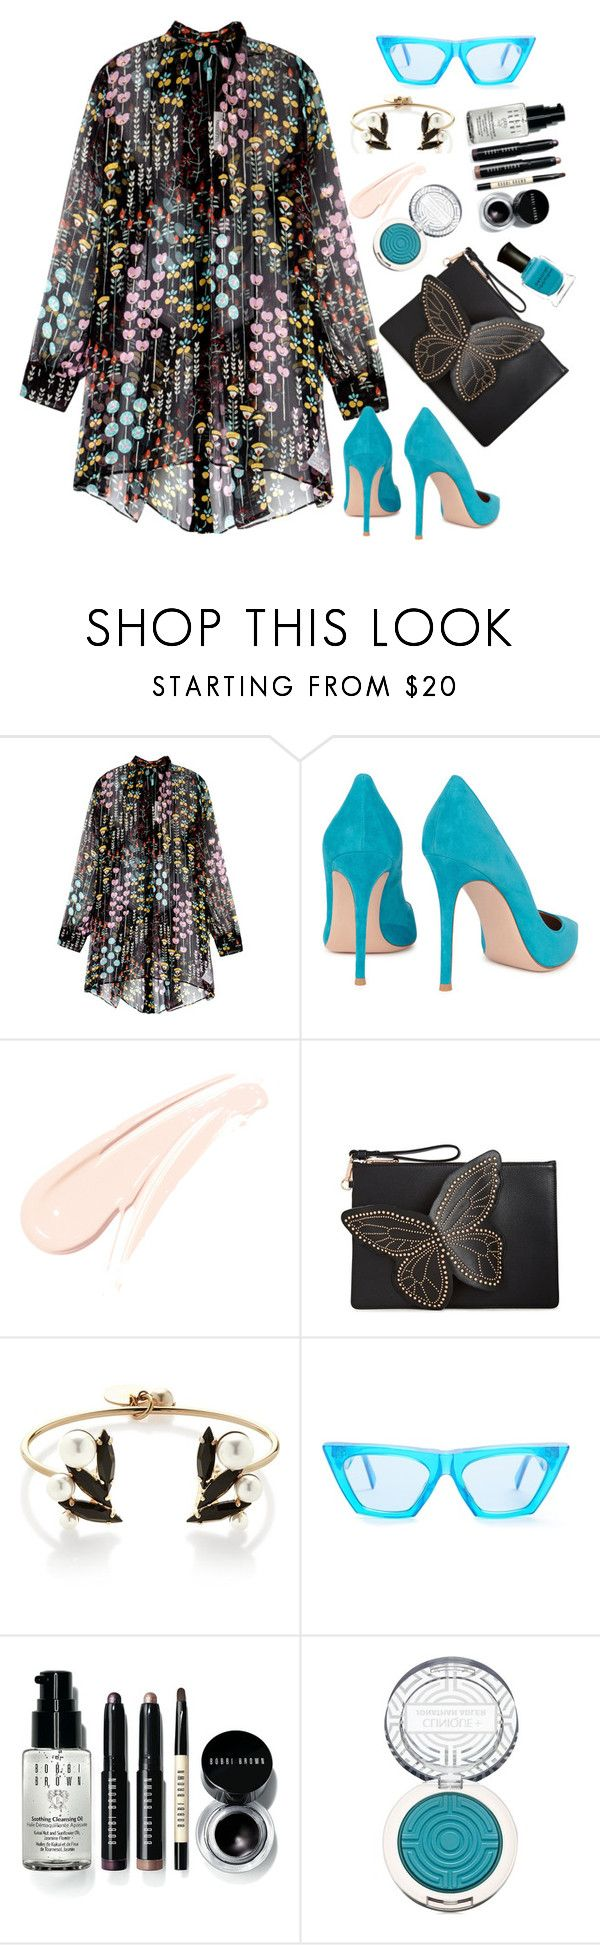 """""""Valentino"""" by thestyleartisan ❤ liked on Polyvore featuring Valentino, Gianvito Rossi, Sophia Webster, Anton Heunis, CÉLINE, Bobbi Brown Cosmetics, Clinique and Deborah Lippmann"""